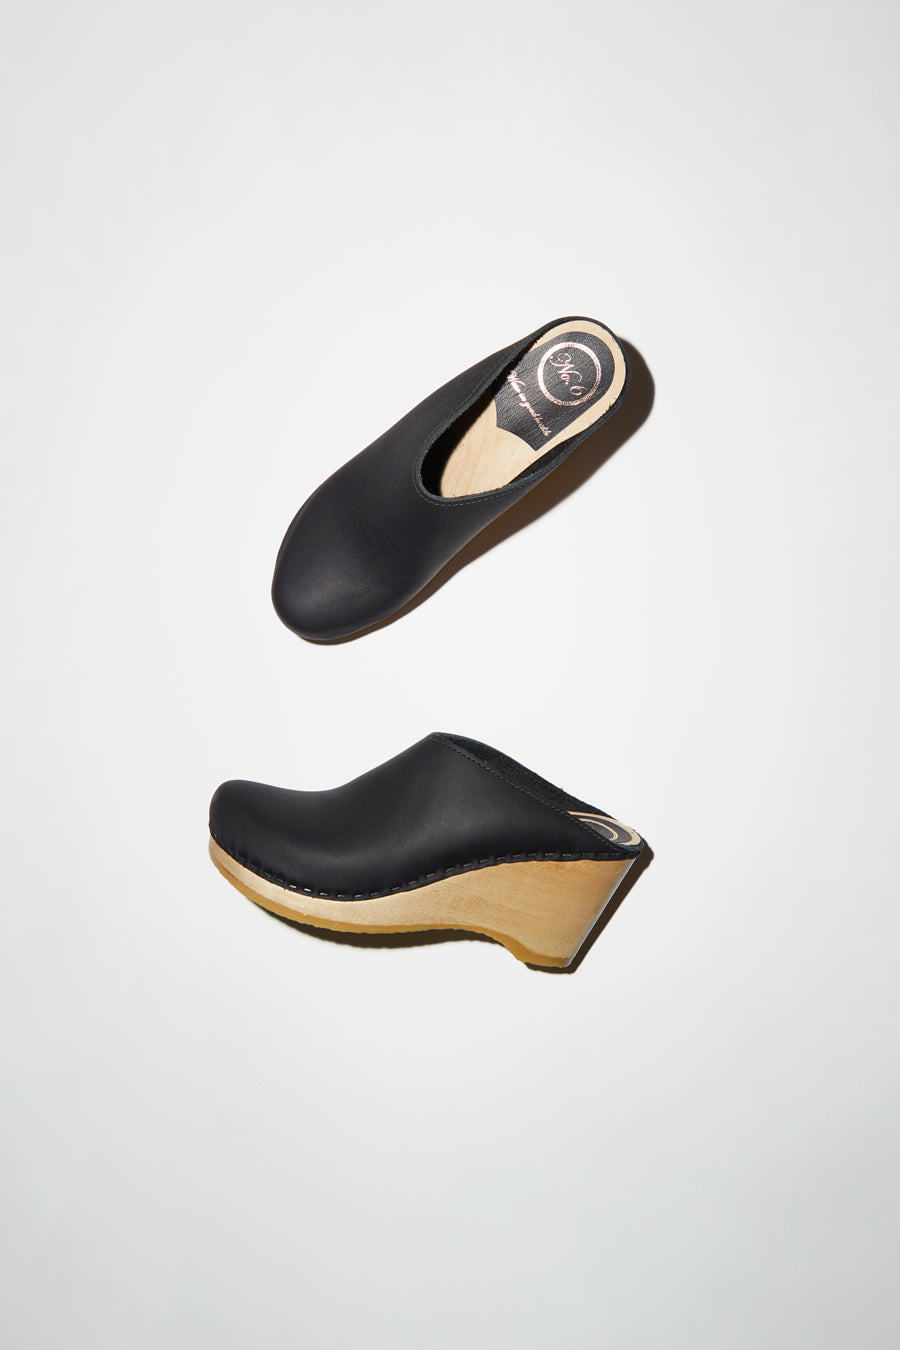 No.6 New School Clog on Wedge in Black